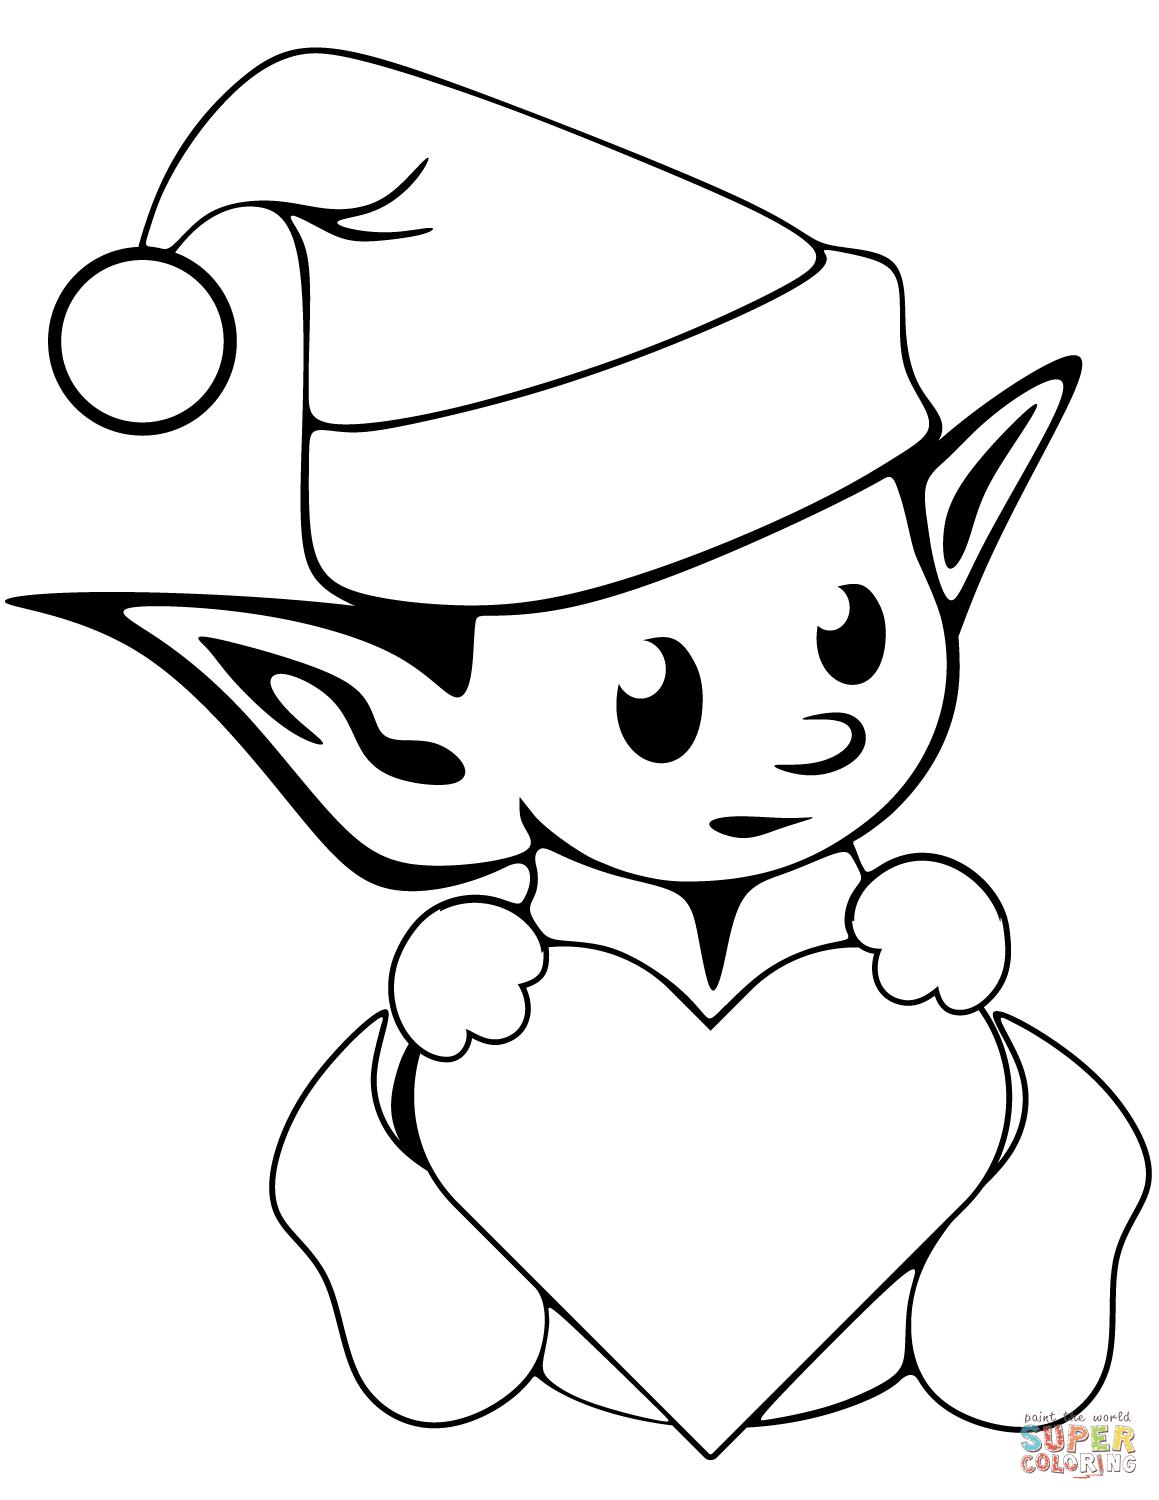 1159x1500 Coloring Pages Christmas Elf Simple Colorings